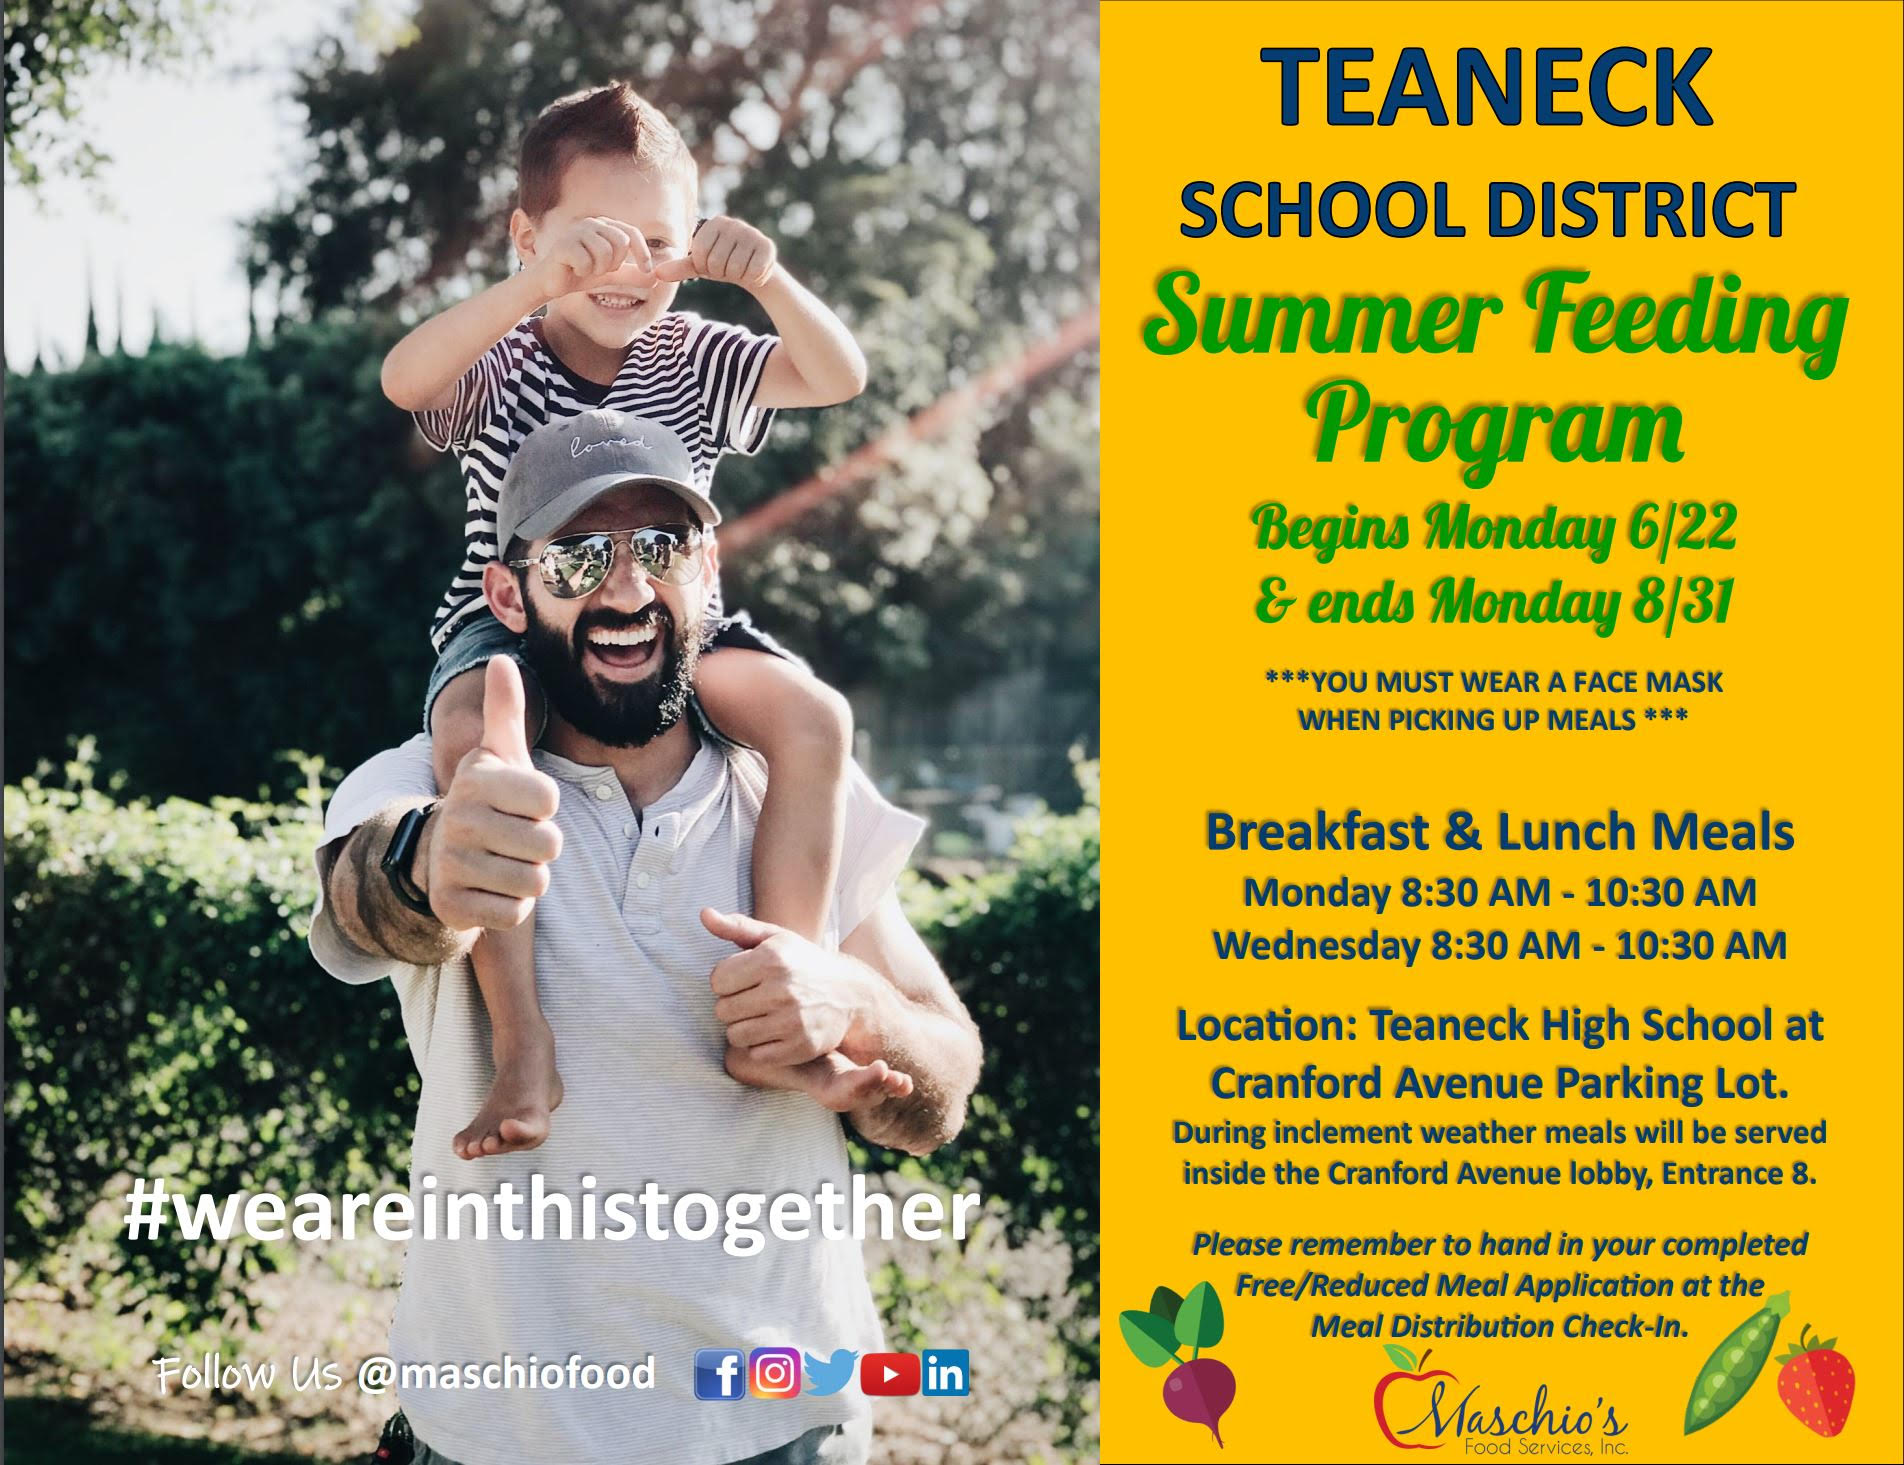 Teaneck Feeding Program